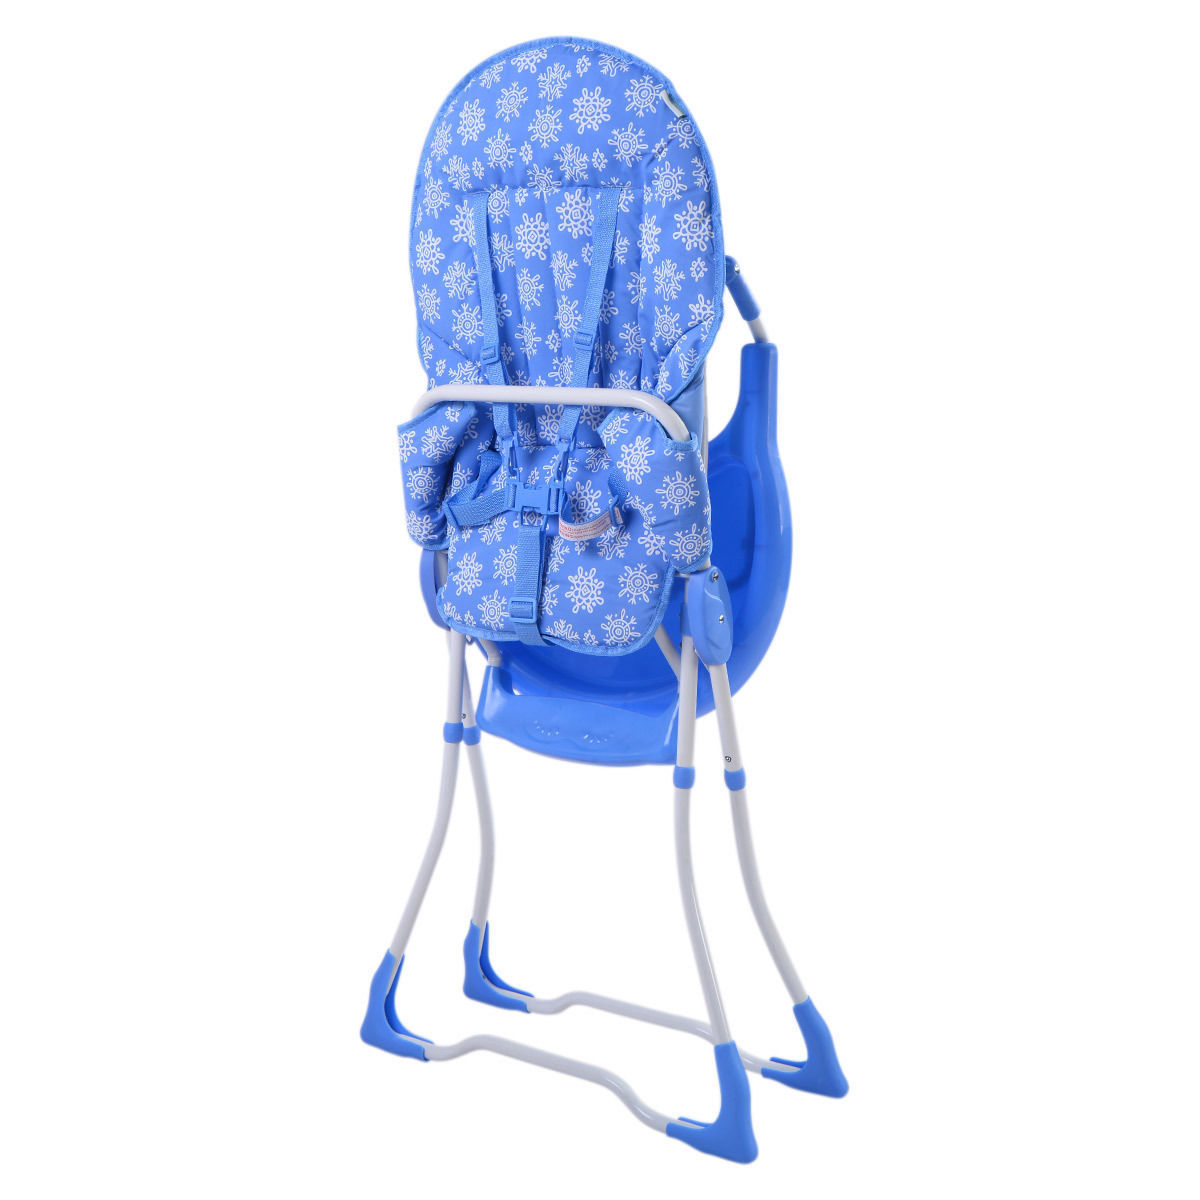 GHP 33-Lbs Capacity Blue Portable Folding Feeding Booster Seat Toddler High Chair